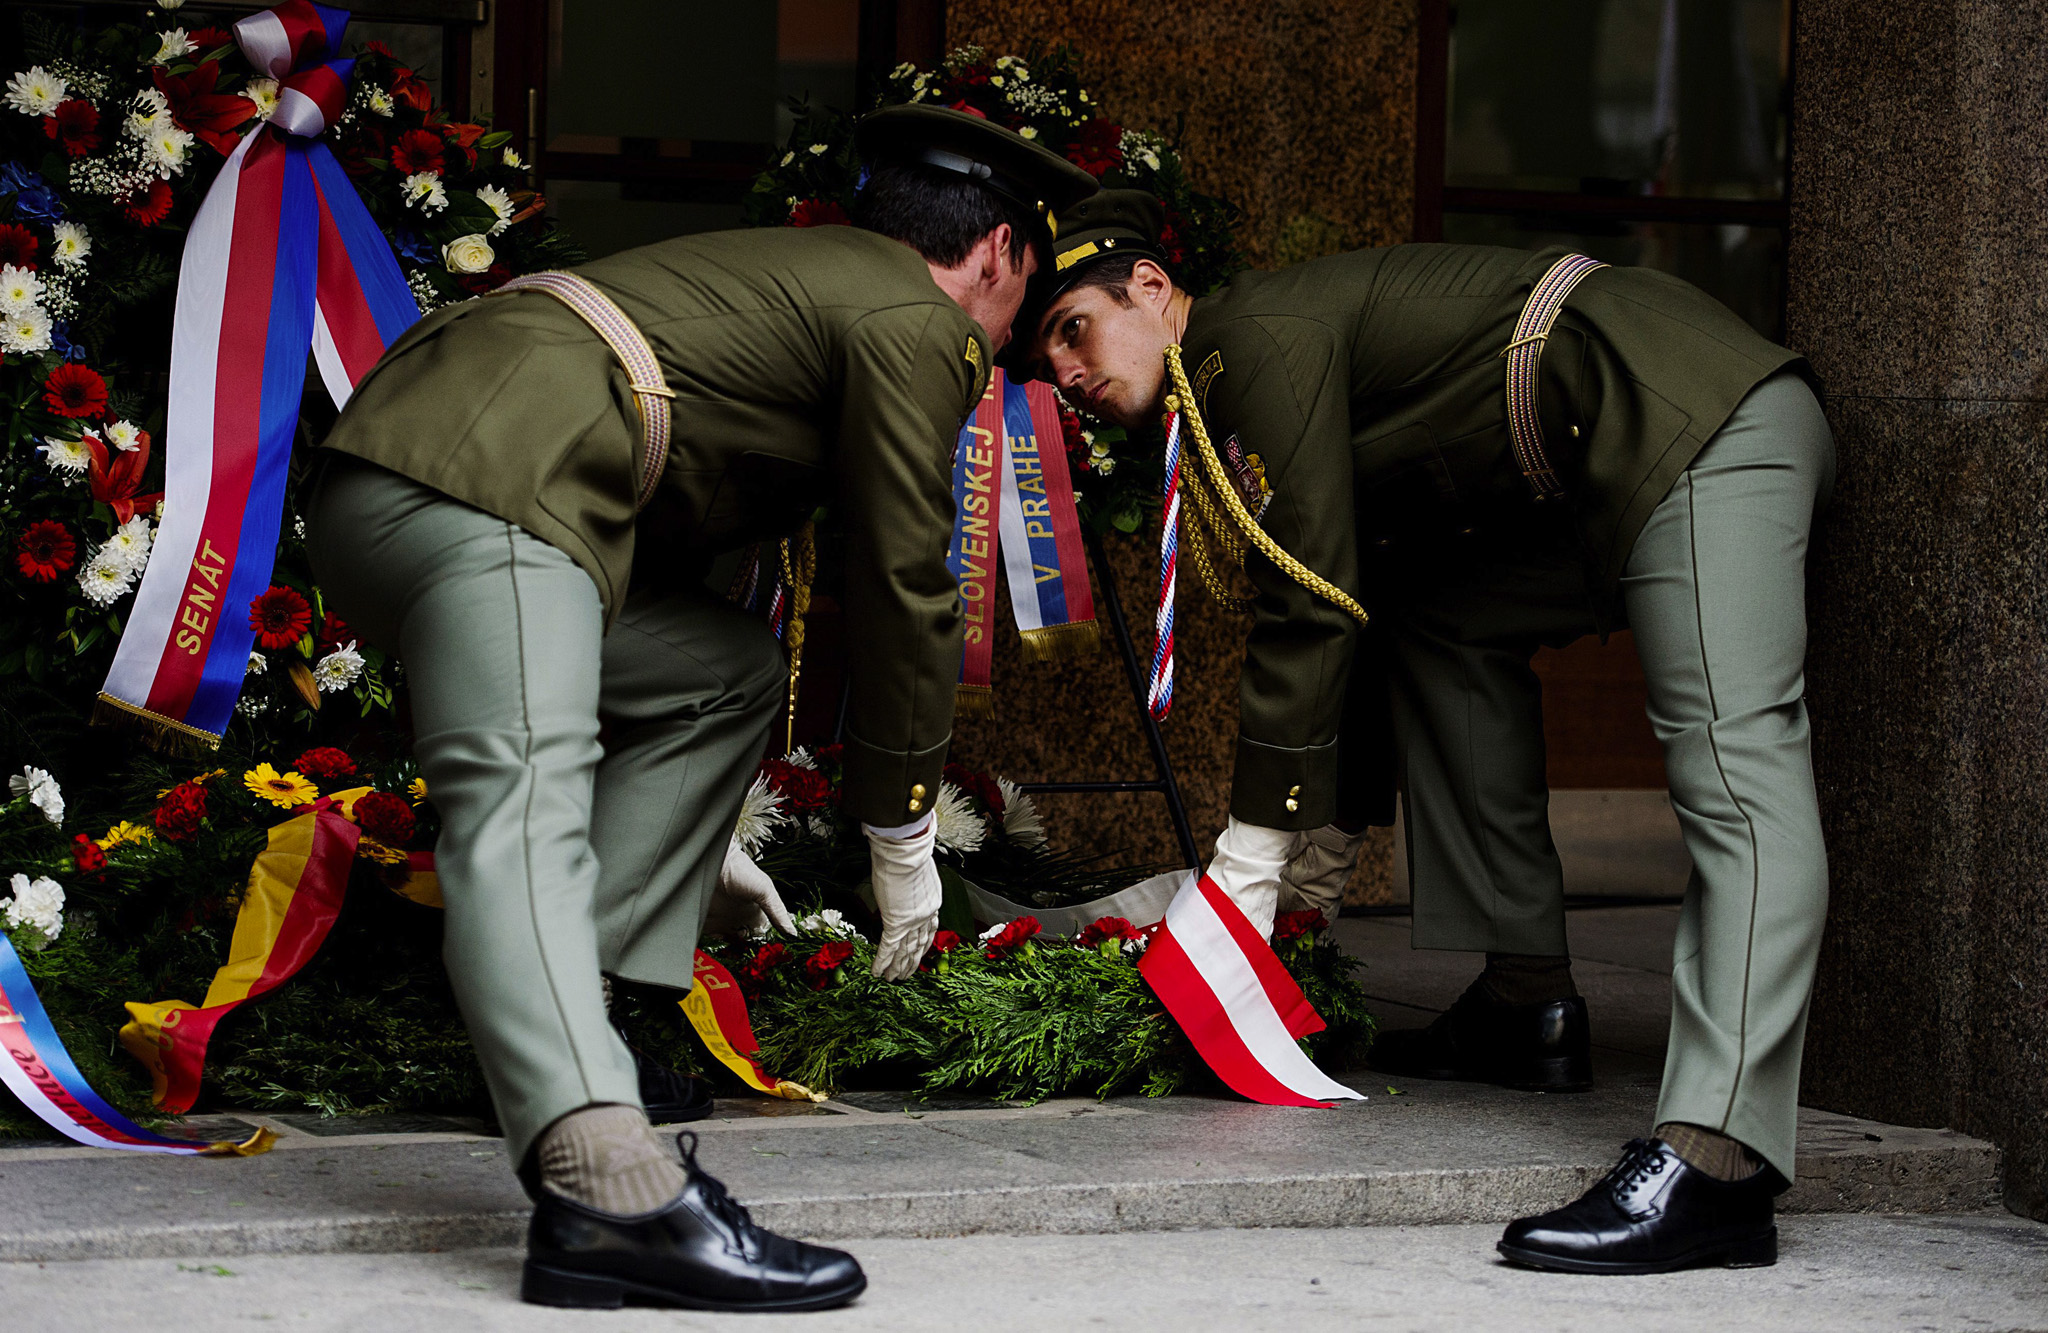 Czech Soldiers place a wreath during a ceremony outside the Czech Radio building in Prague to commemorate the 46th anniversary of the Soviet-led occupation of the former Czechoslovakia in 1968